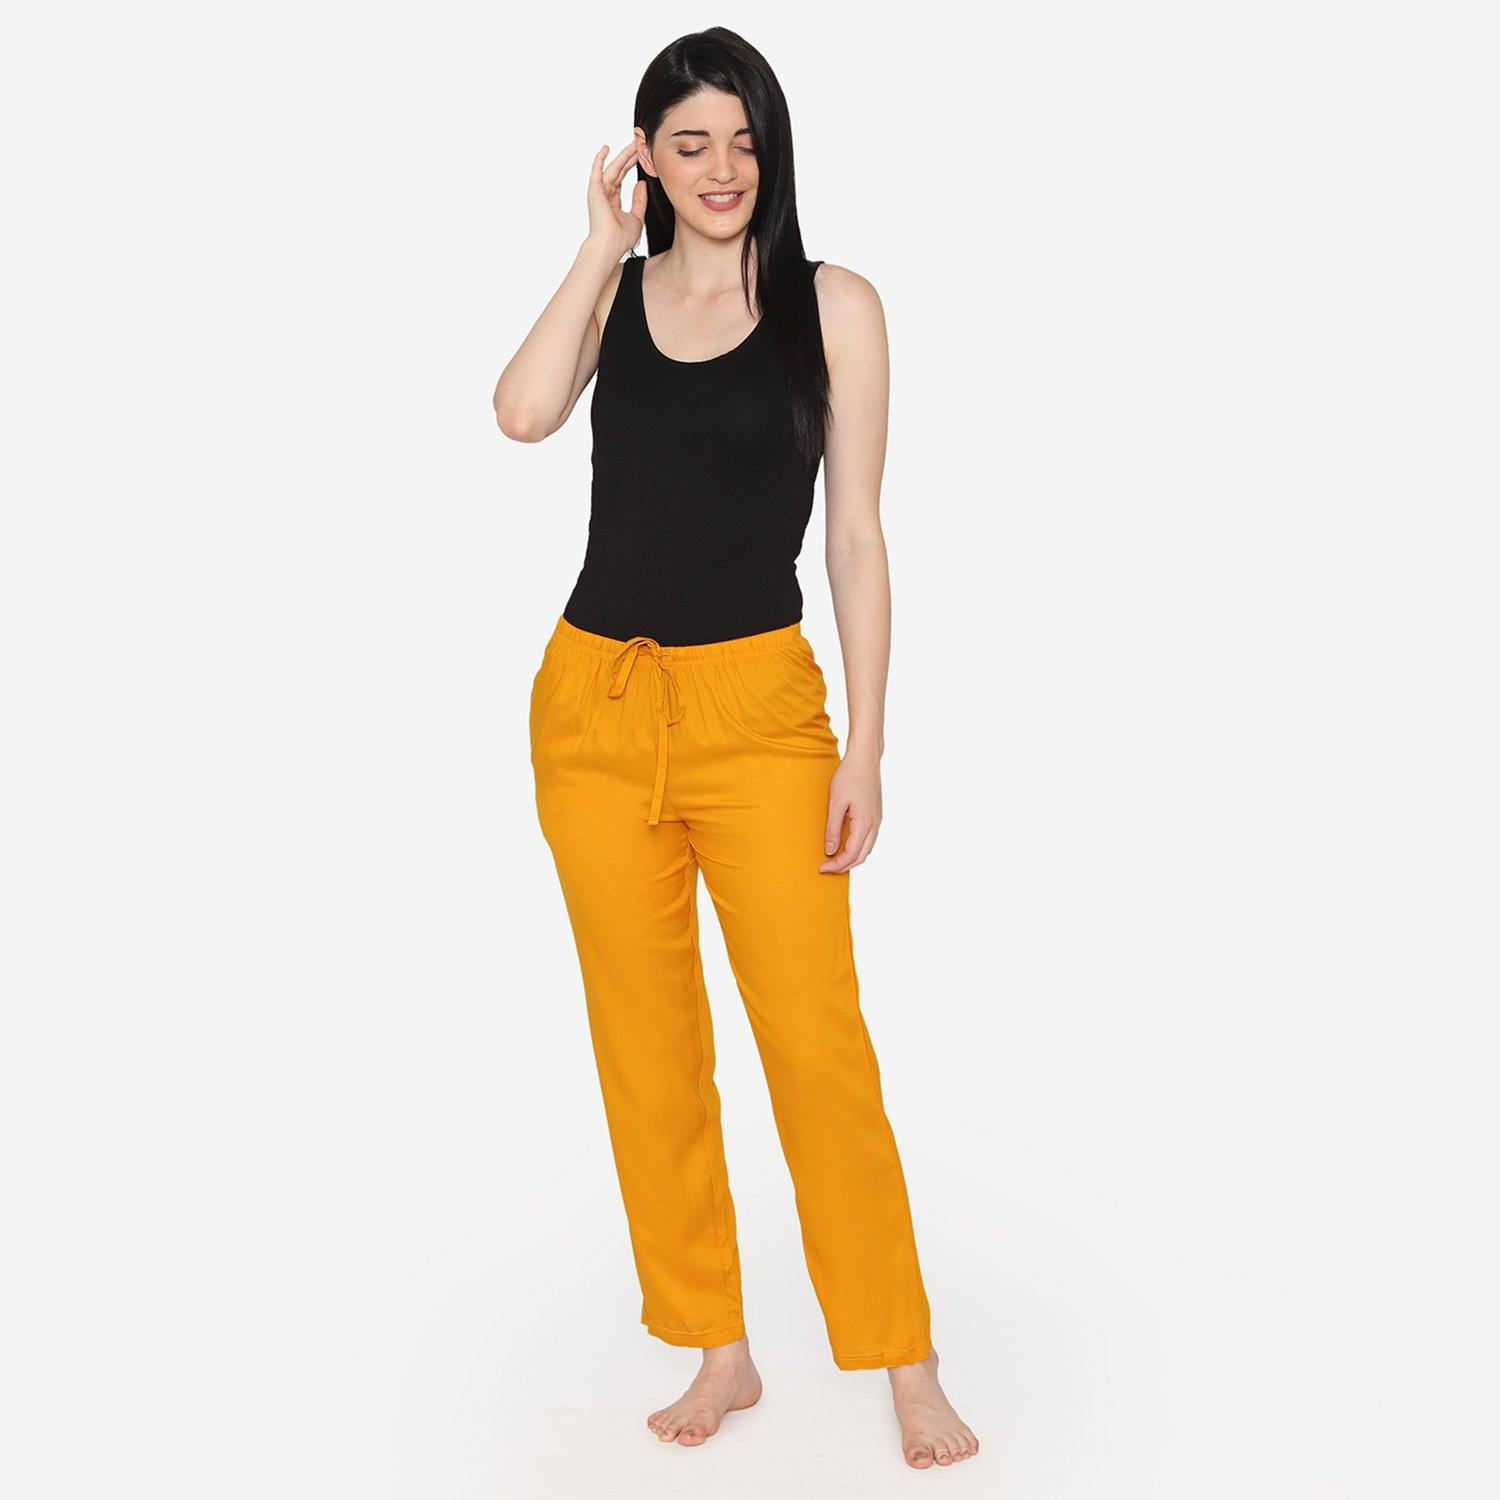 Women's Plain Lower With Drawstring - Mustard - Bonjour Group